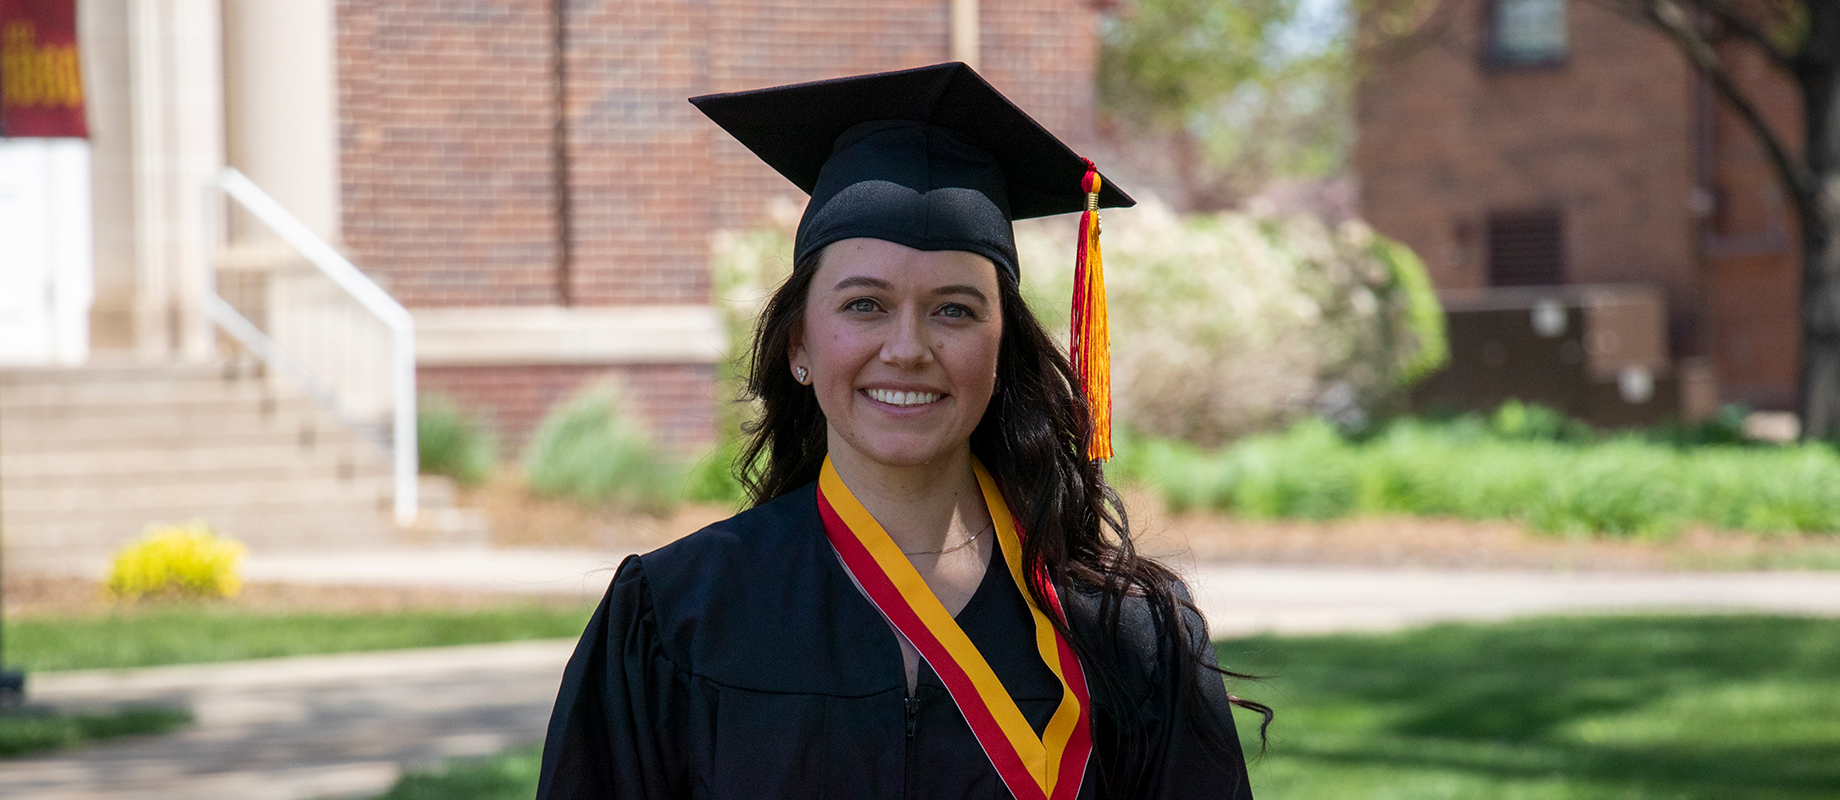 Simpson College graduate Brittany Peters at the 2021 spring commencement ceremony